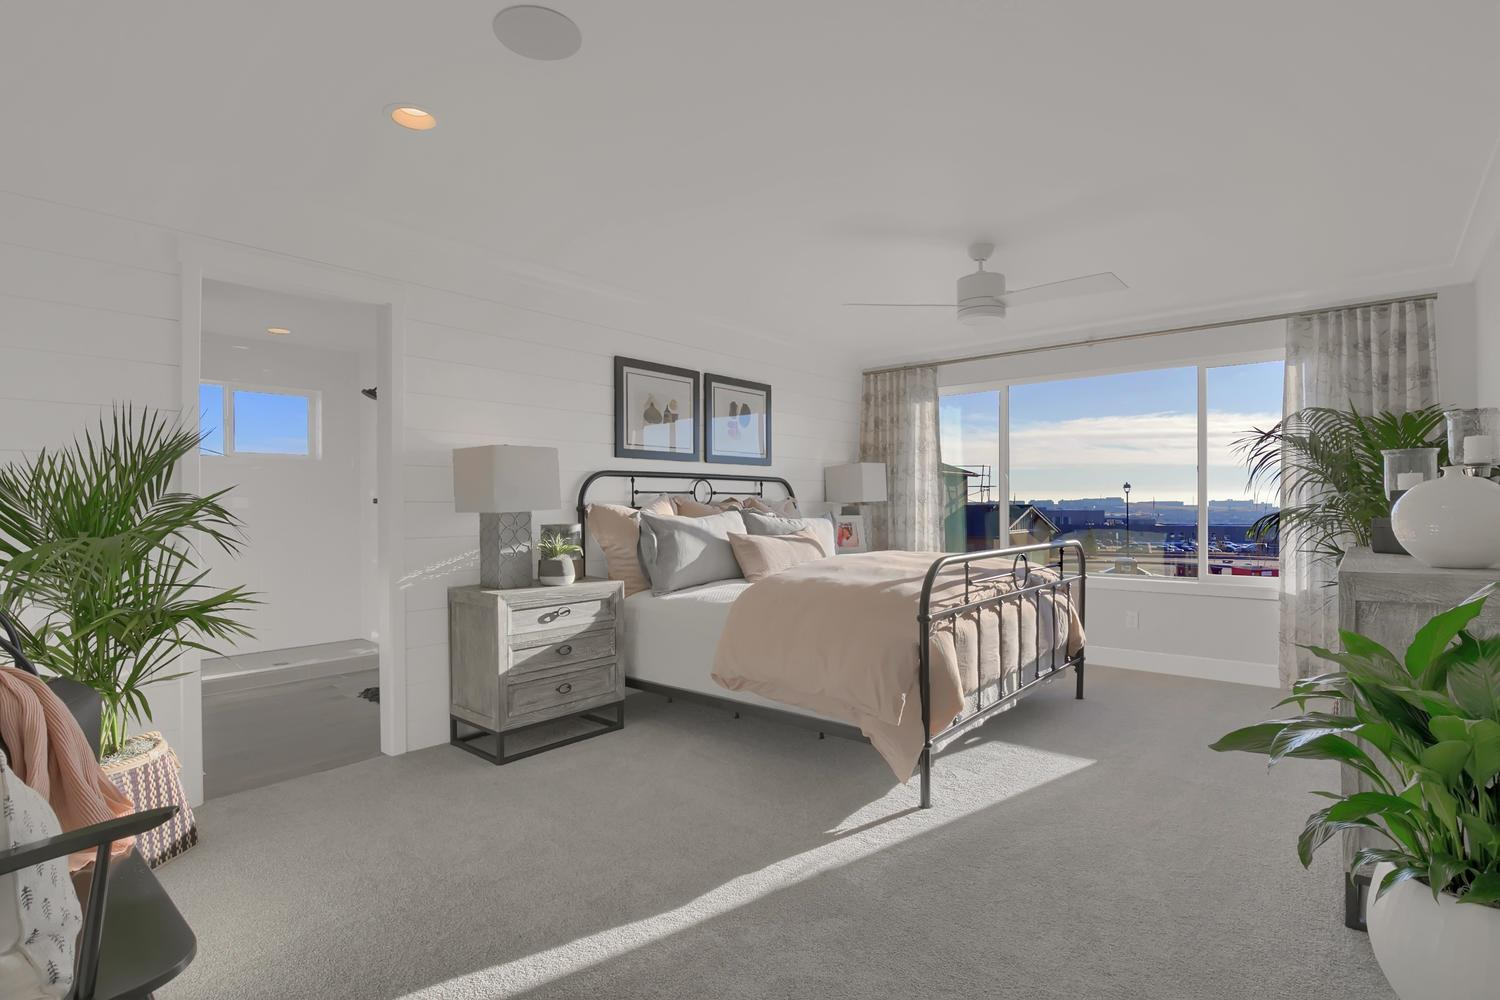 Bedroom featured in the Culebra By Keller Homes, A Toll Bros. Co. in Colorado Springs, CO